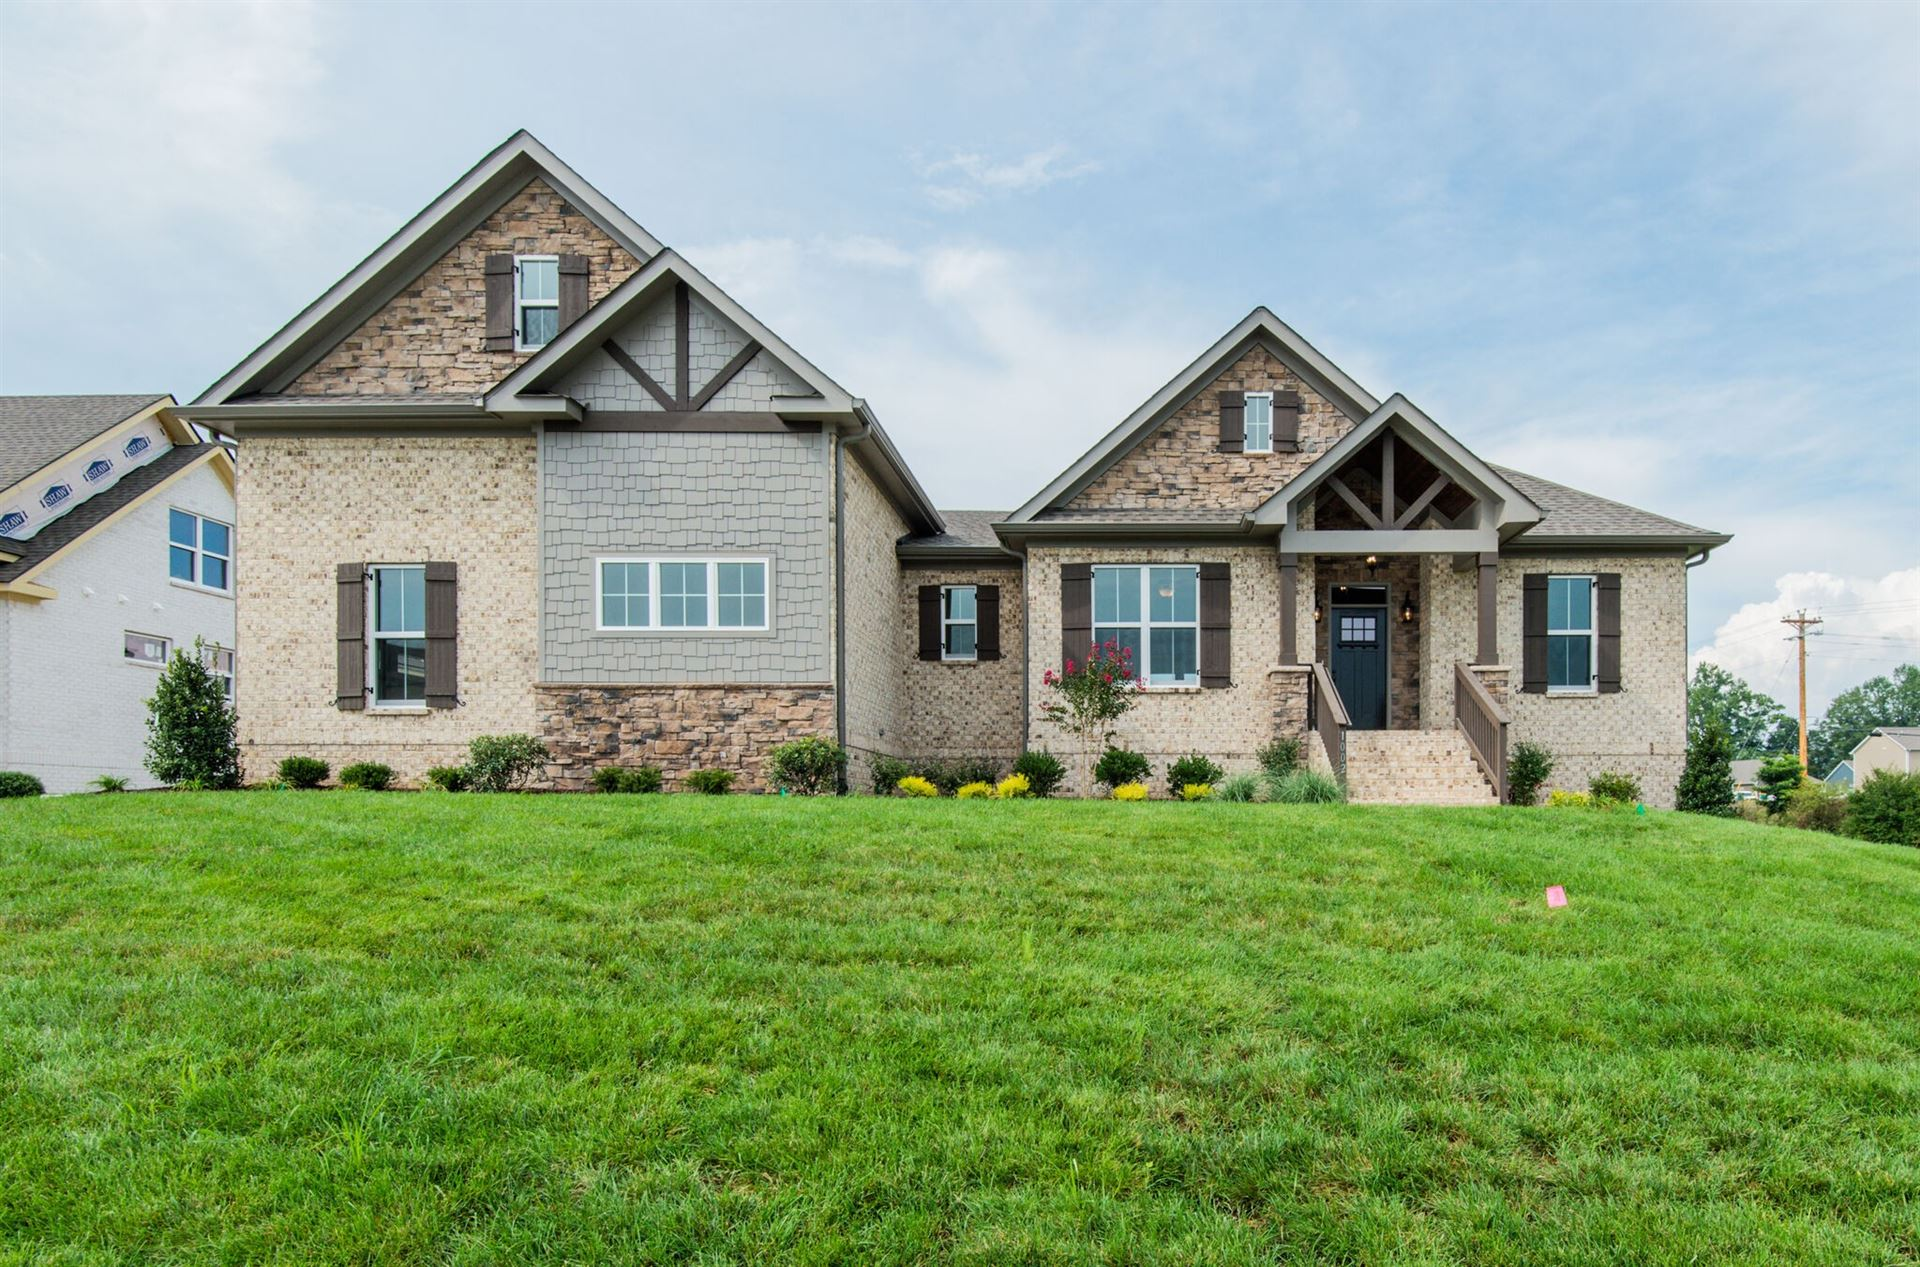 Photo of 2003 Imagine Circle, Spring Hill, TN 37174 (MLS # 2167860)